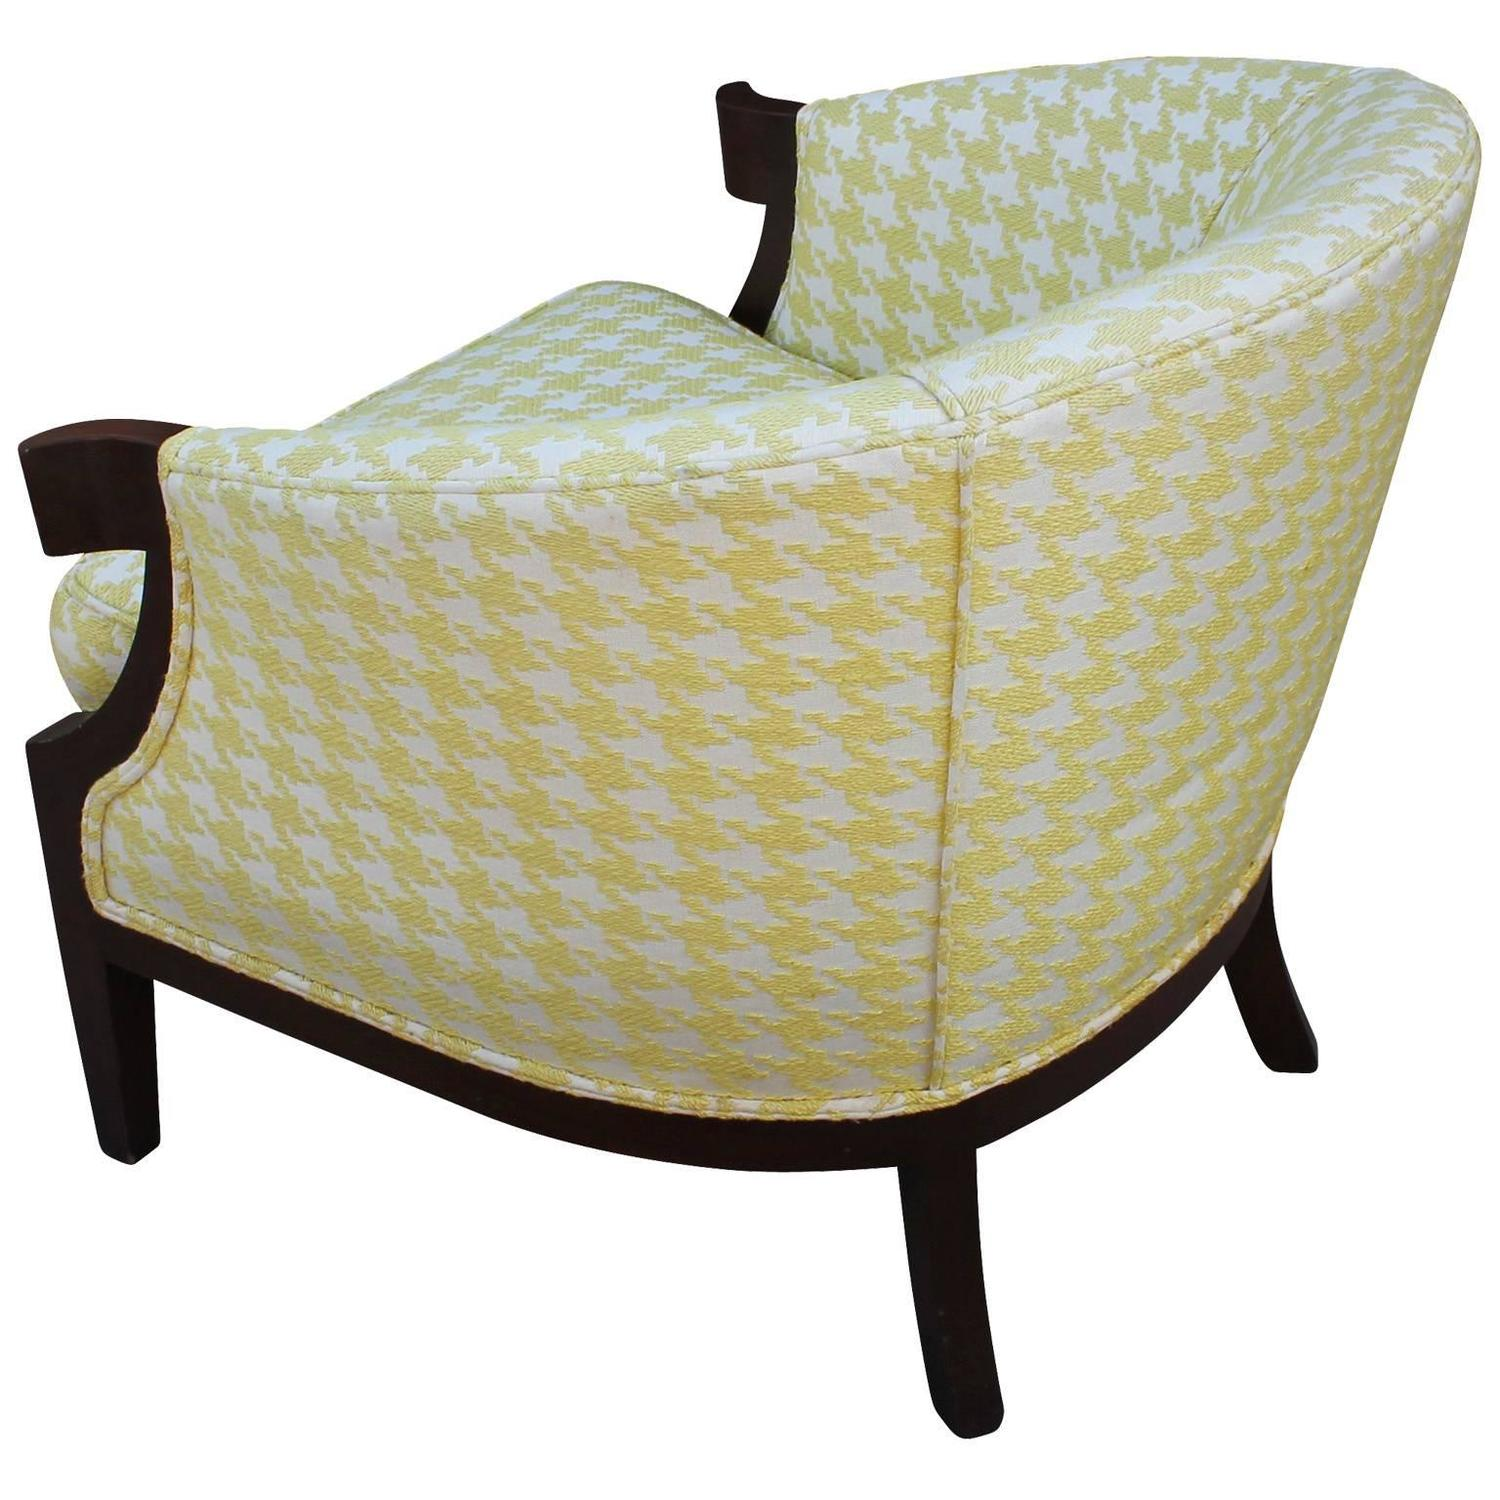 Baker Houndstooth Curved Arm Lounge Chairs at 1stdibs